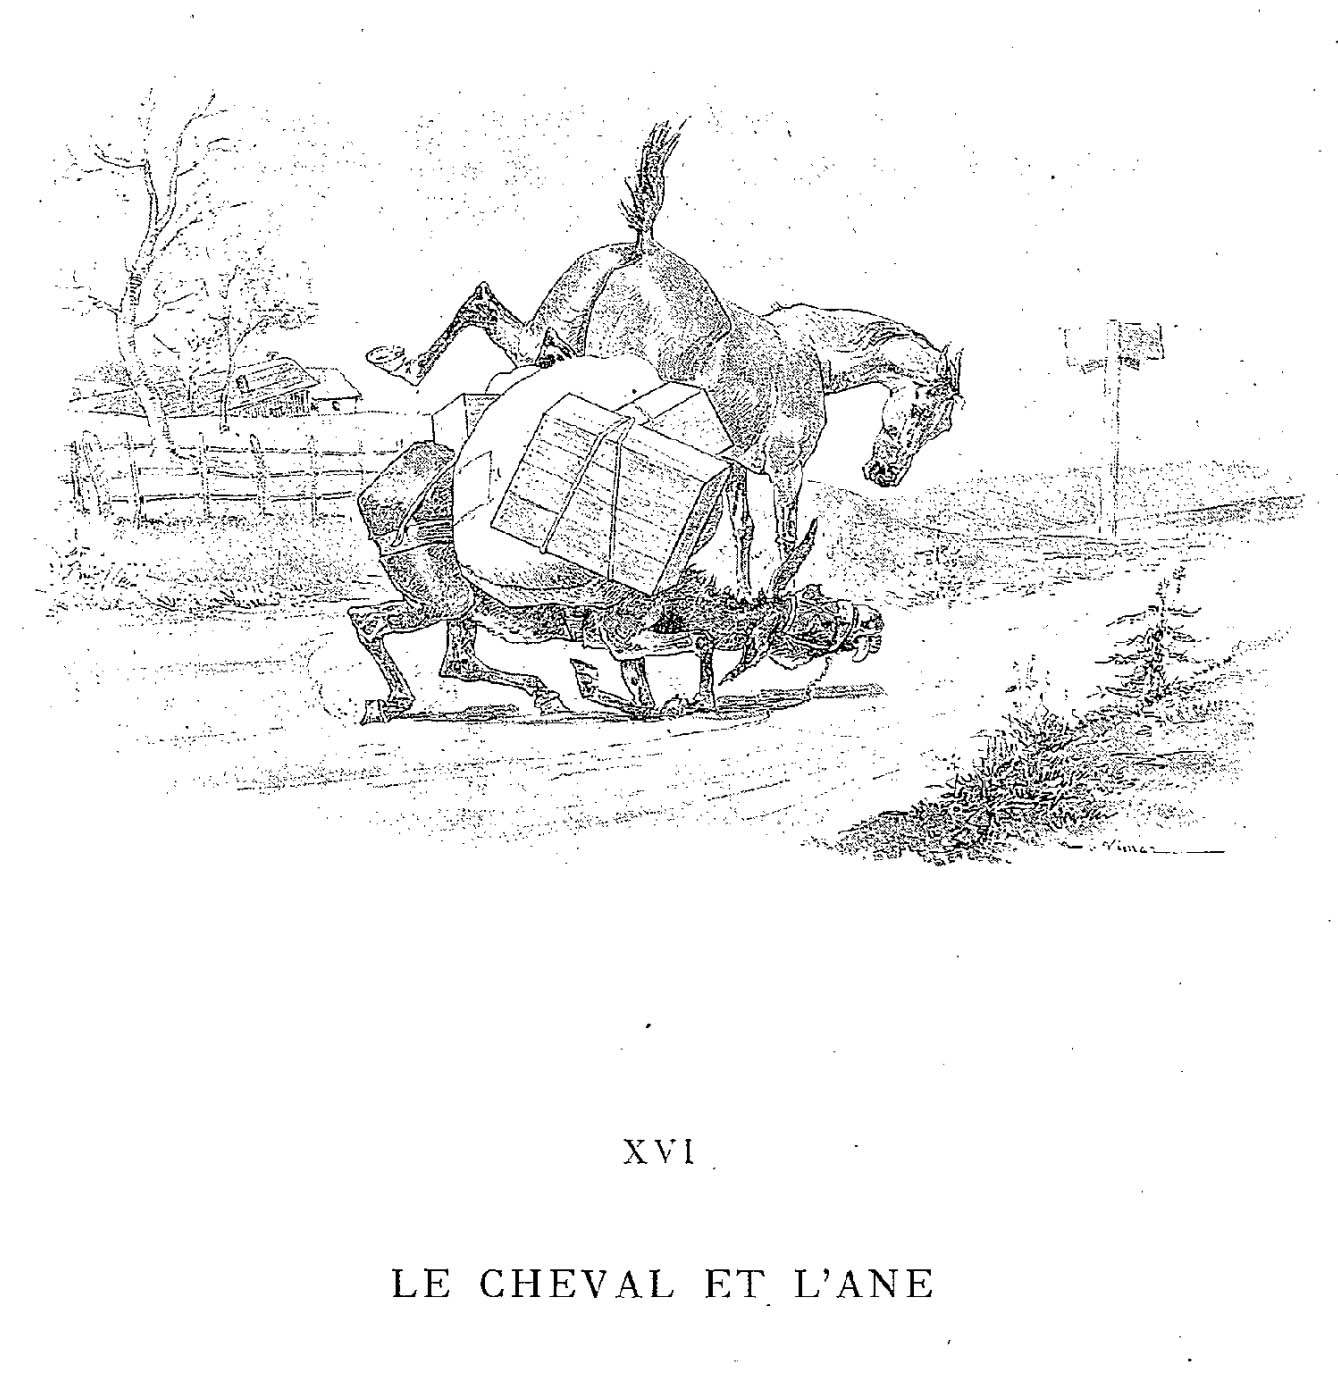 illustrations fables de la Fontaine par Vimar - le cheval et l ane